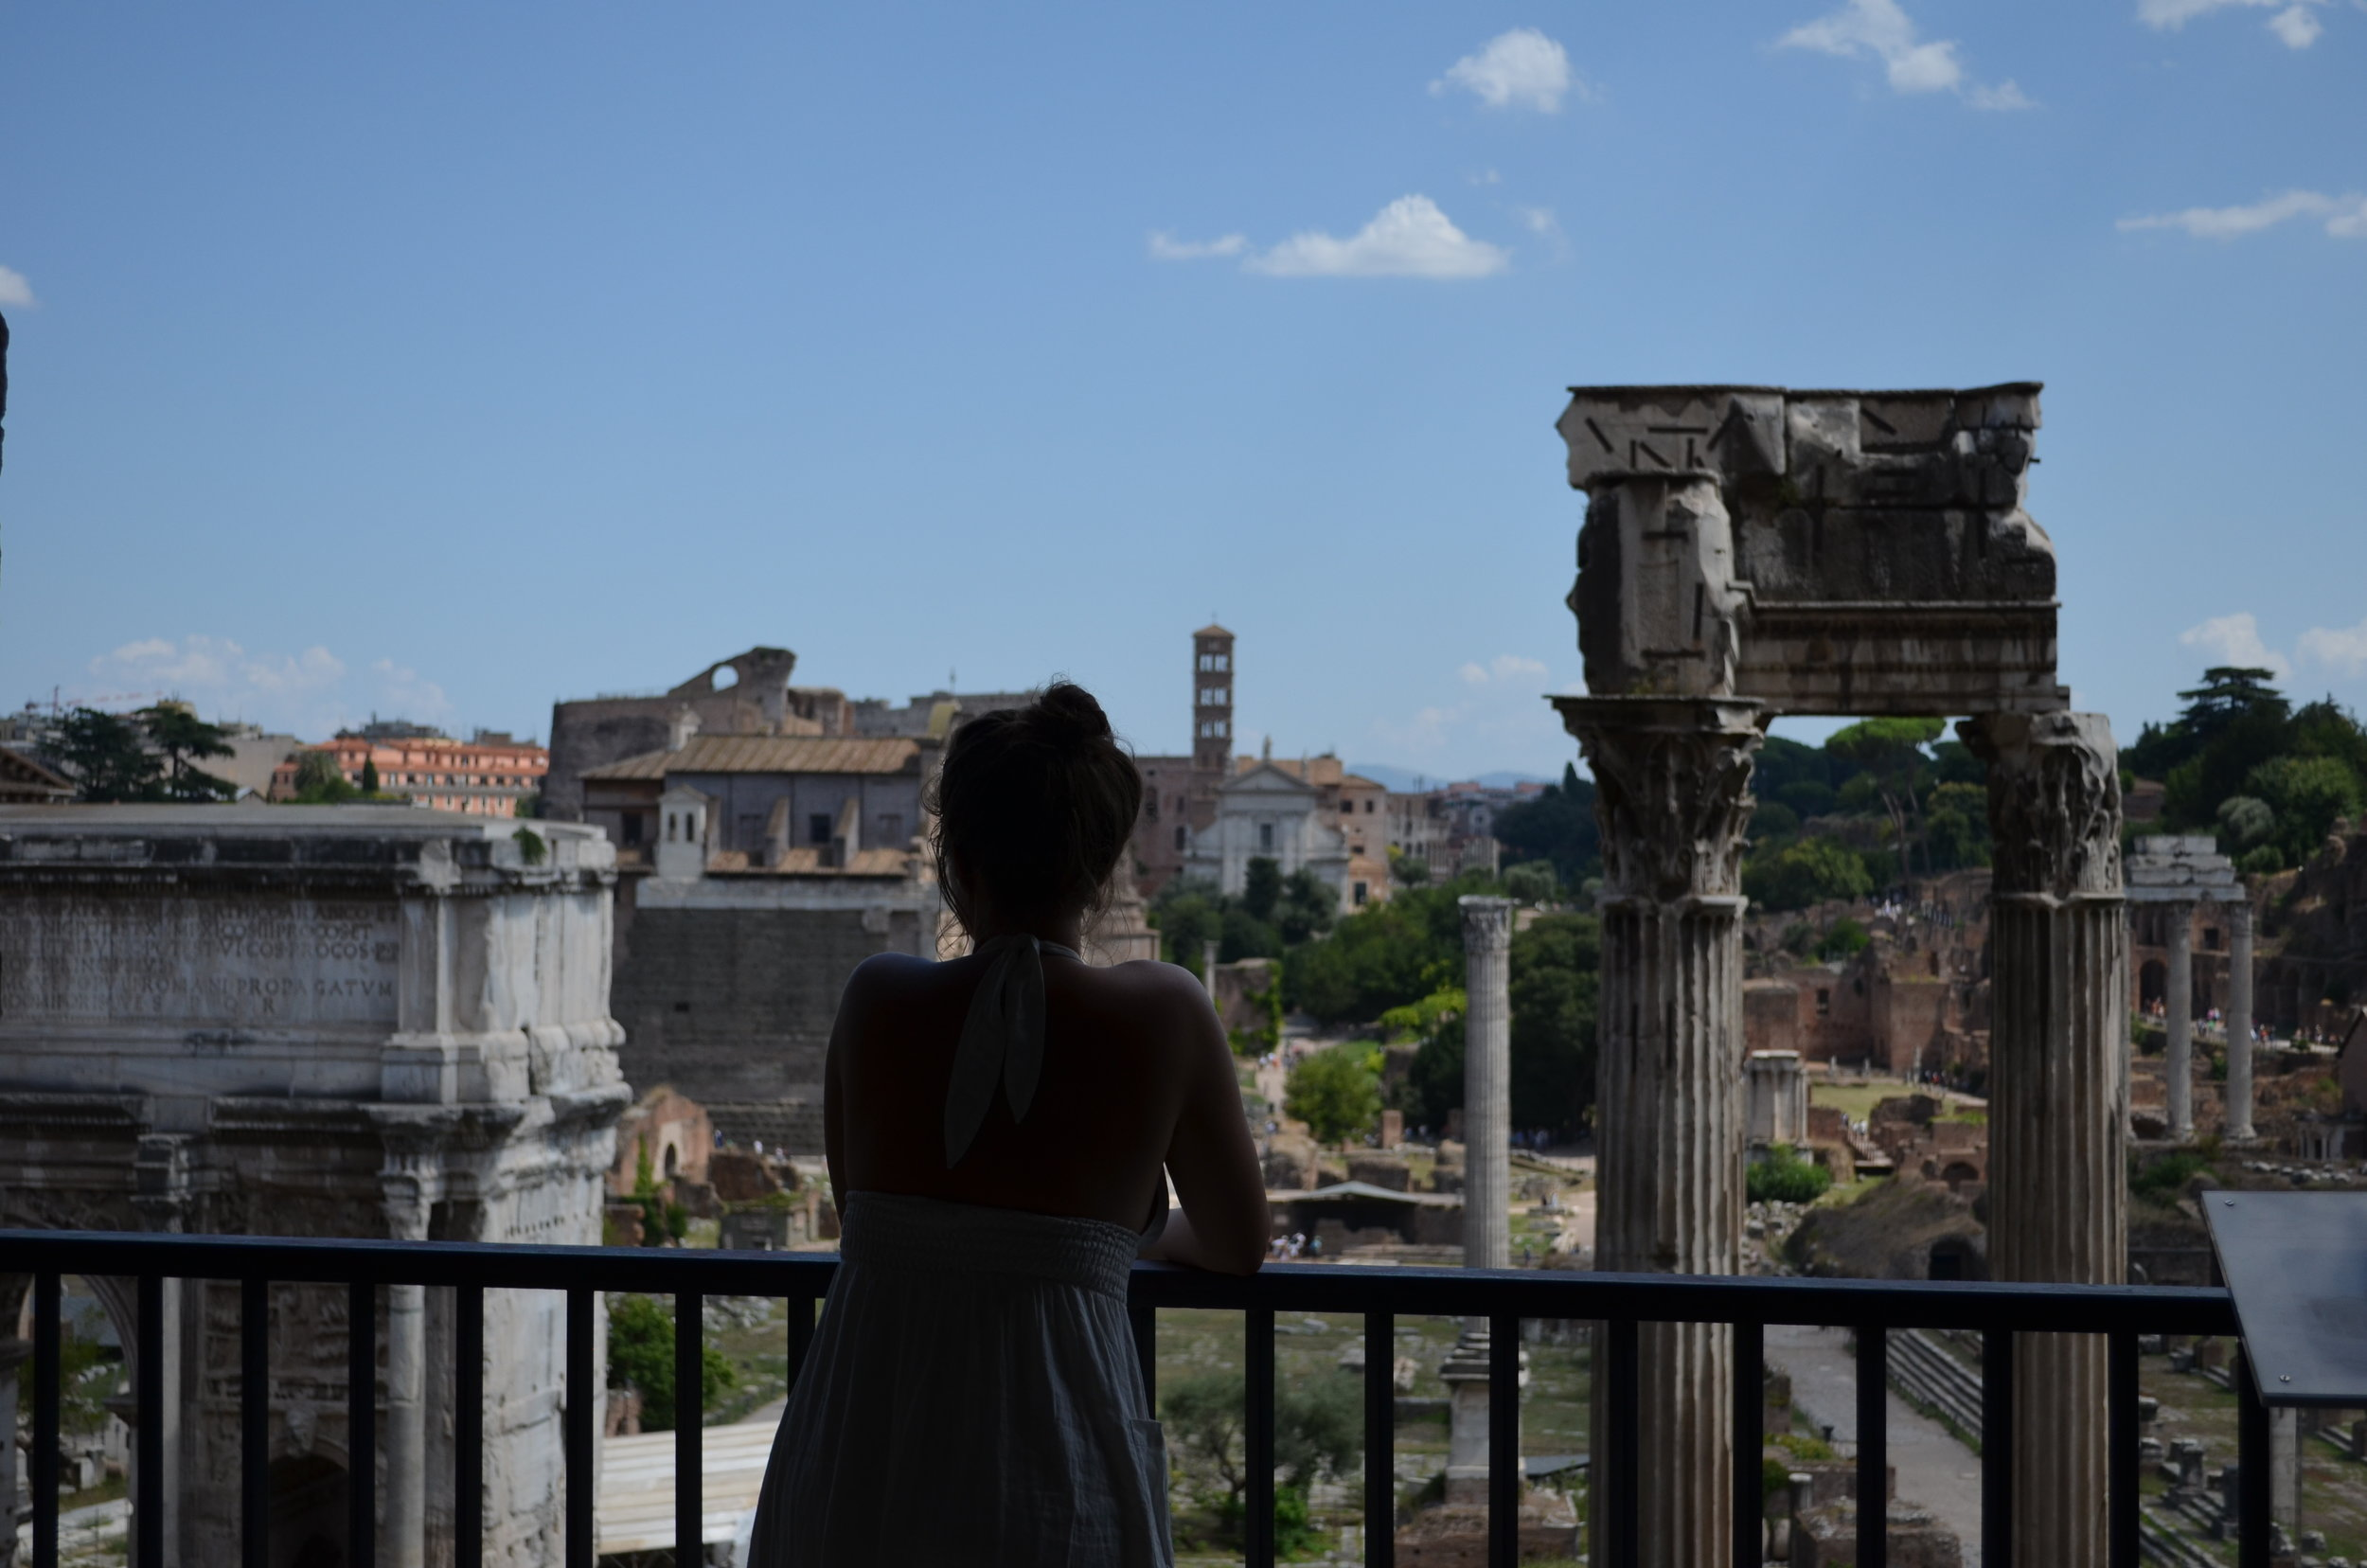 Looking out over the Forum. One of my favorite views we encountered in the city. In the Capitoline